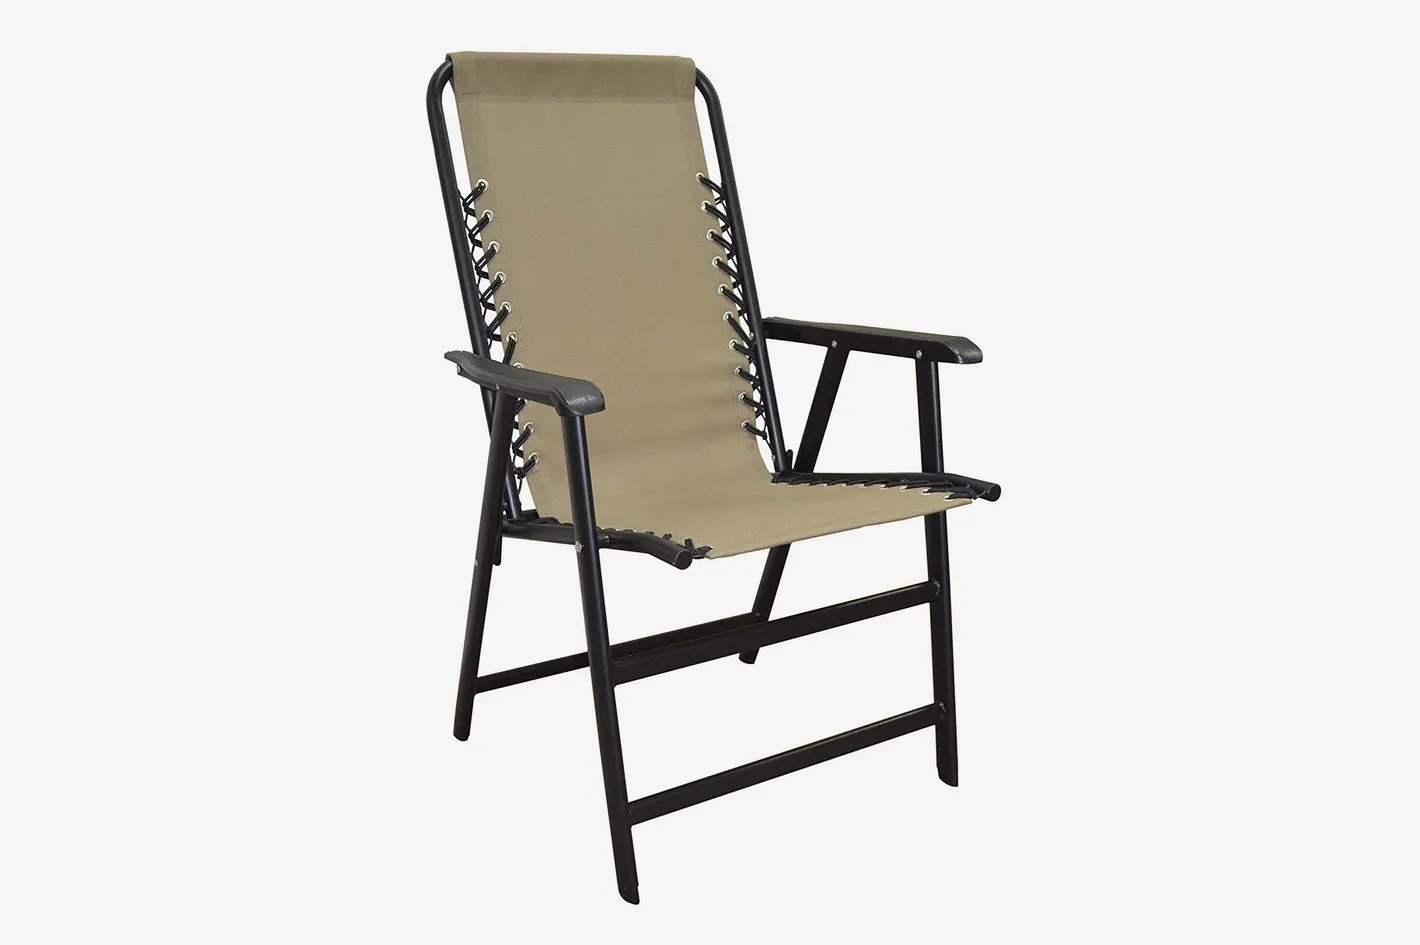 Chairs Folding The 19 Best Stacking And Folding Chairs 2019